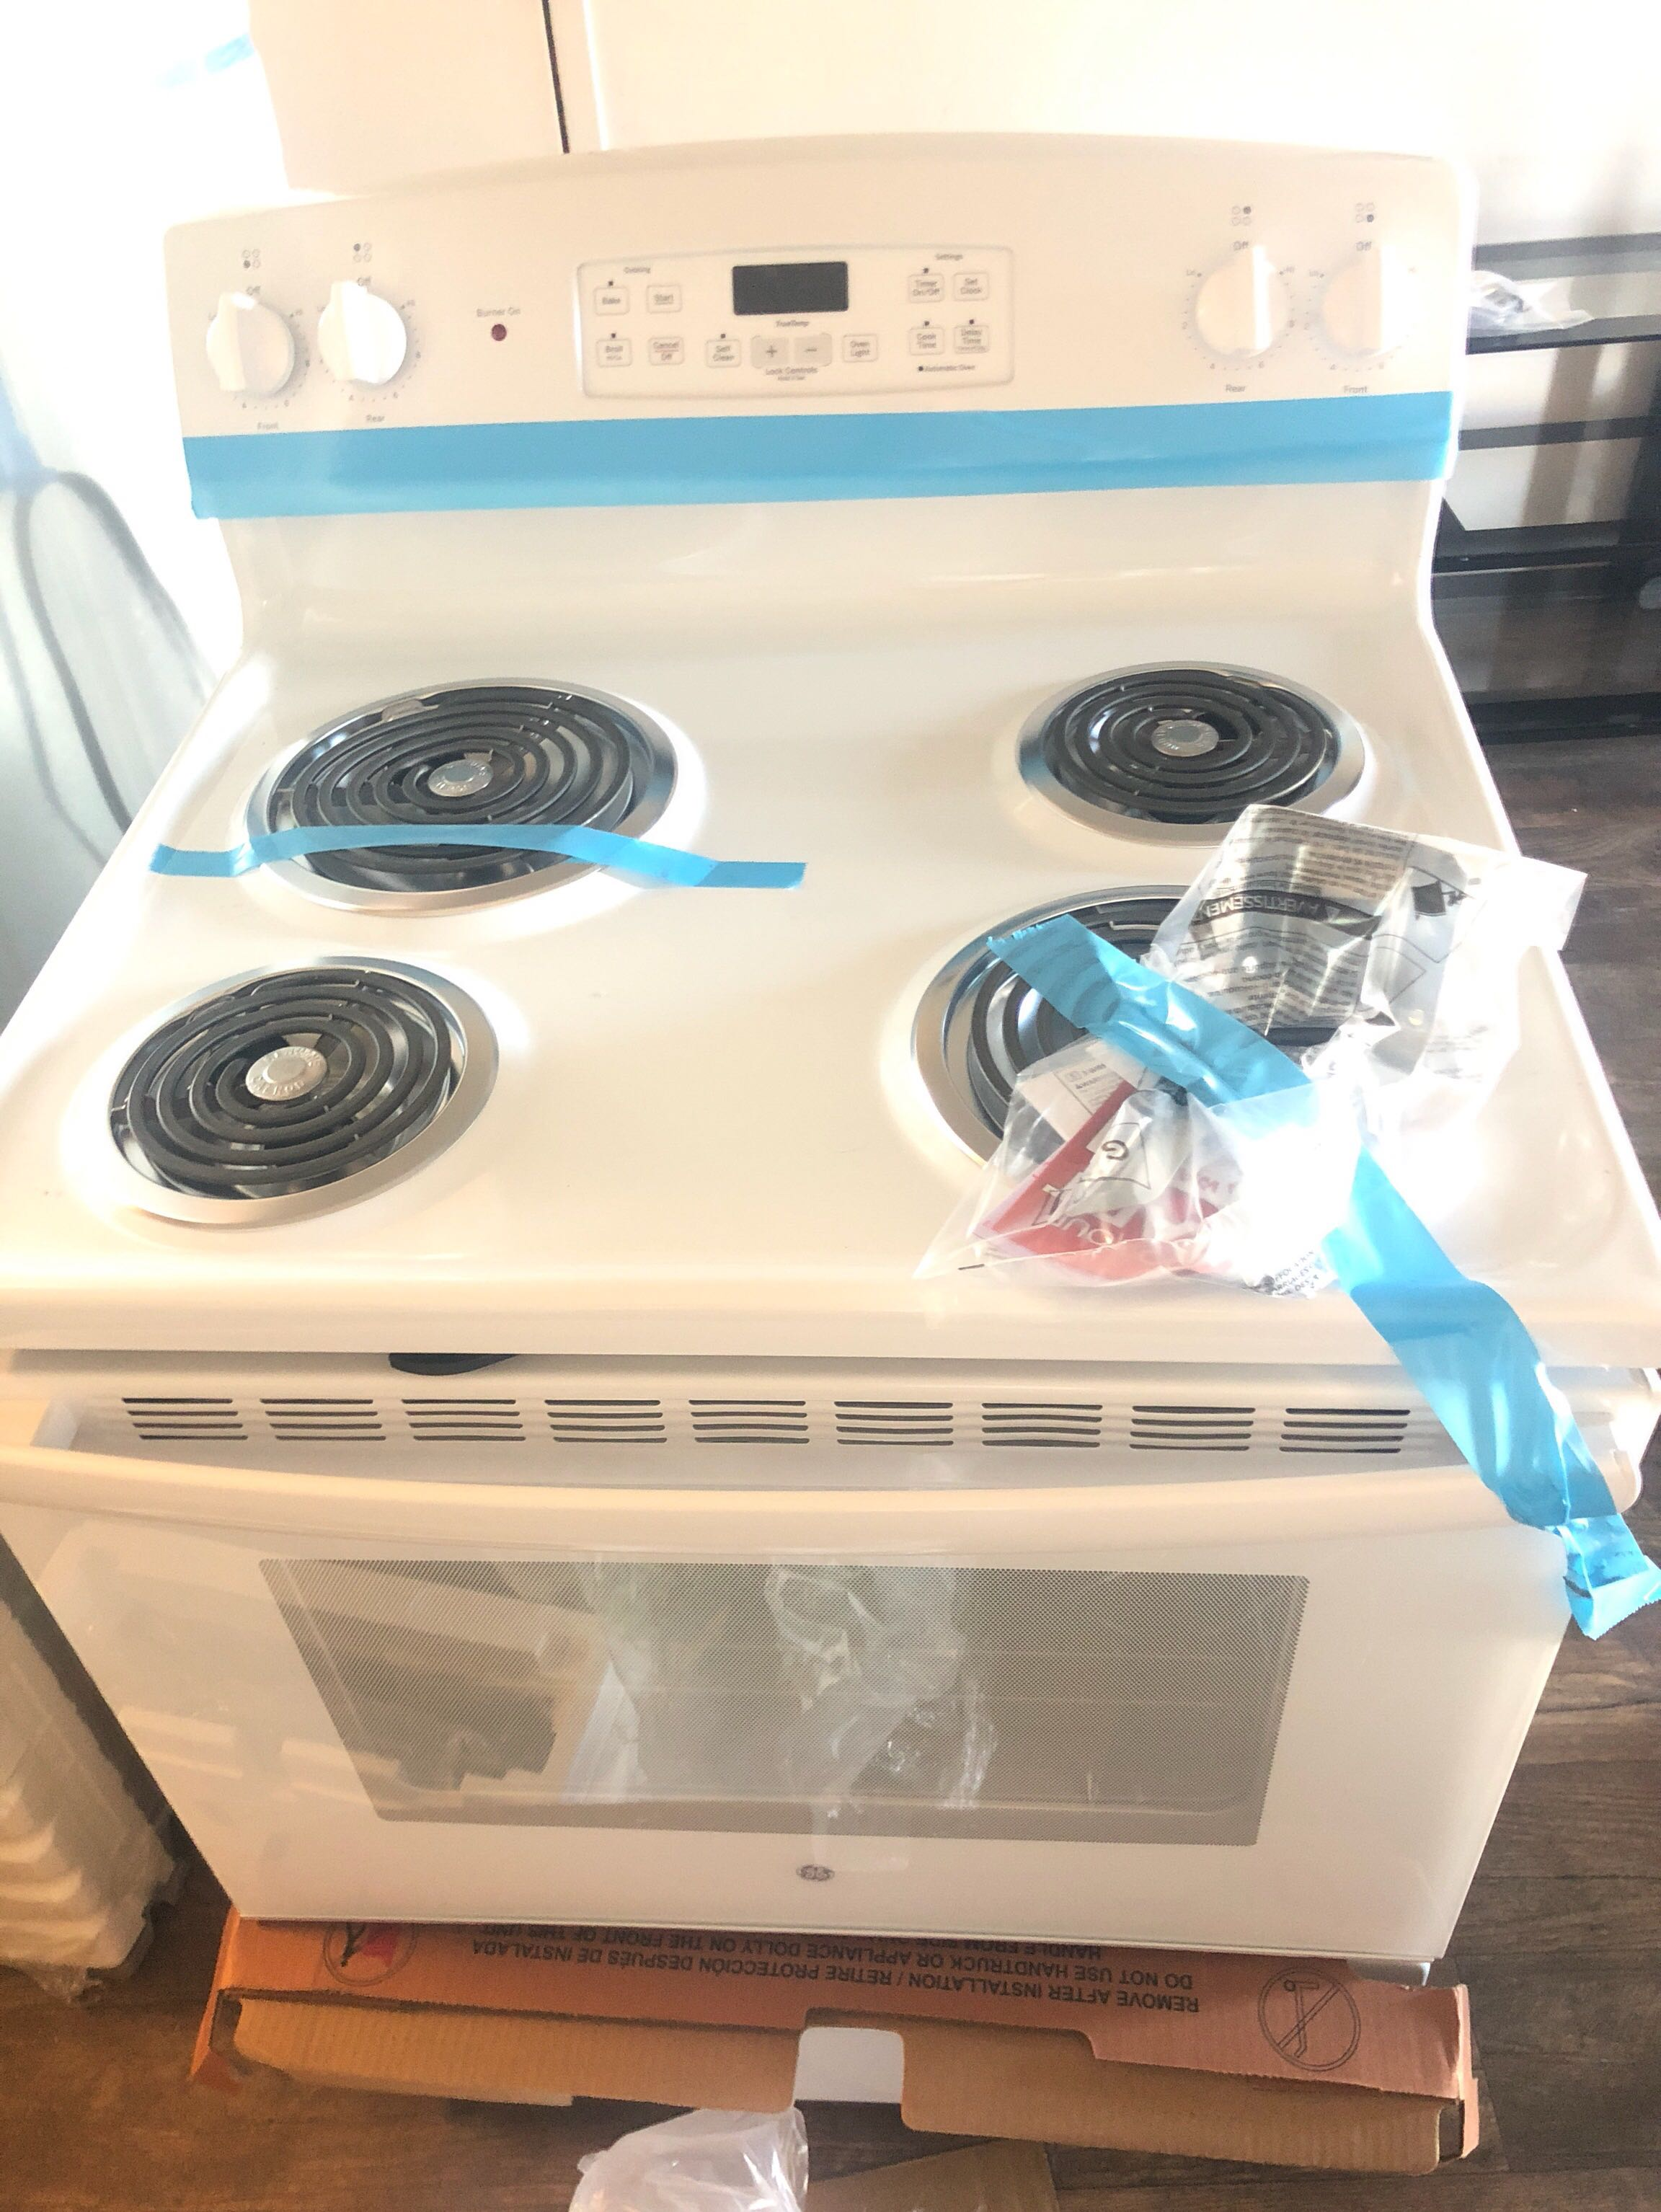 Range electric stove